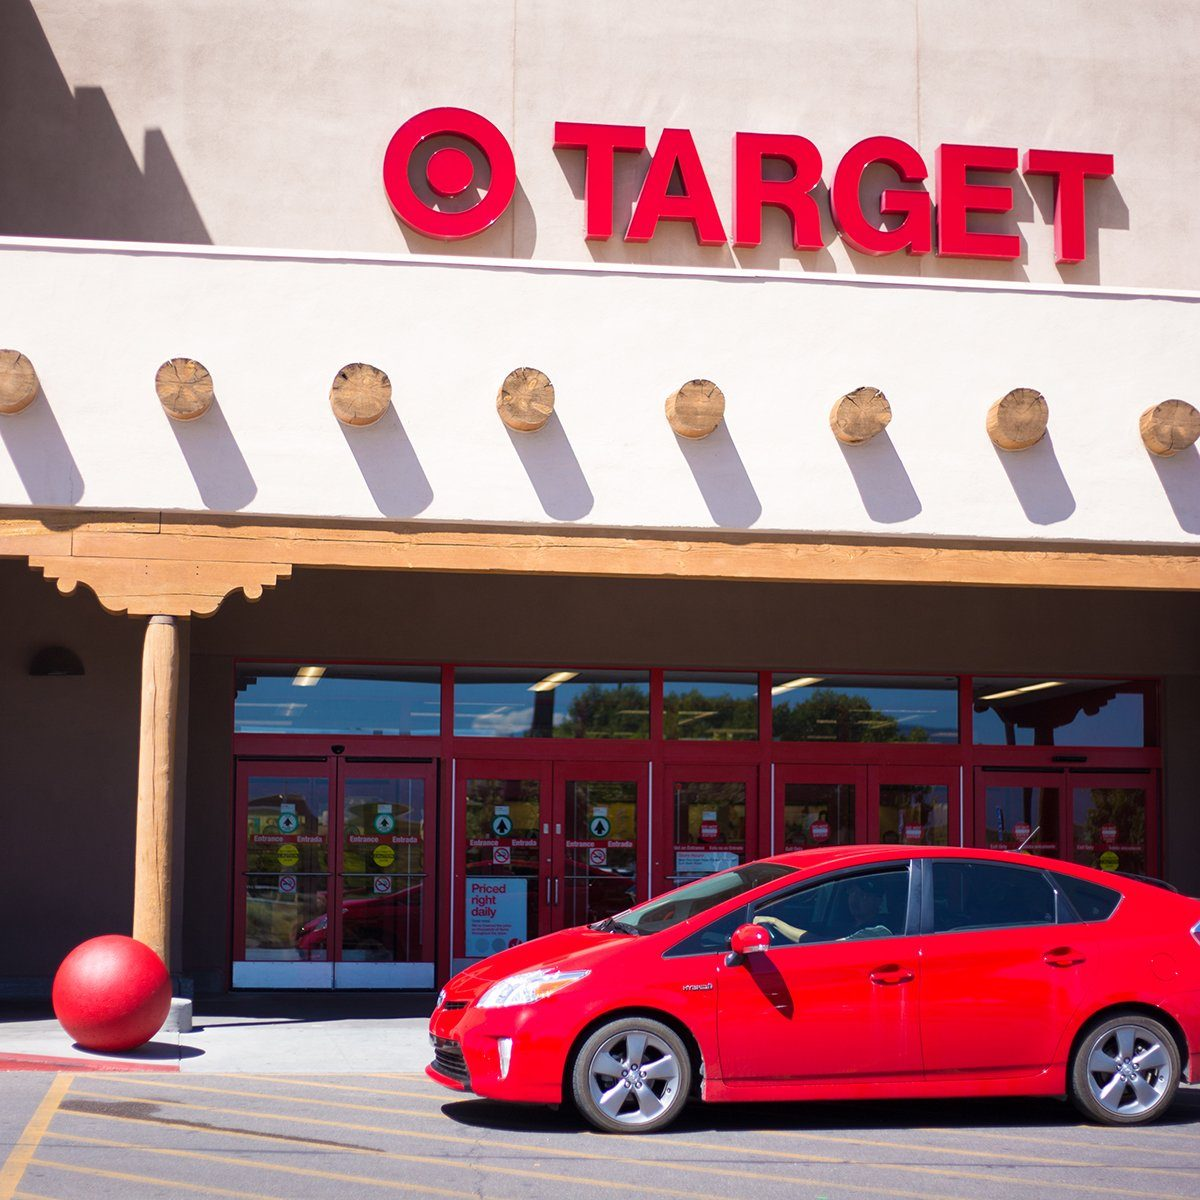 Santa Fe, NM: A red car drives past the entrance to Target, which is constructed in the Southwest Pueblo architectural style.